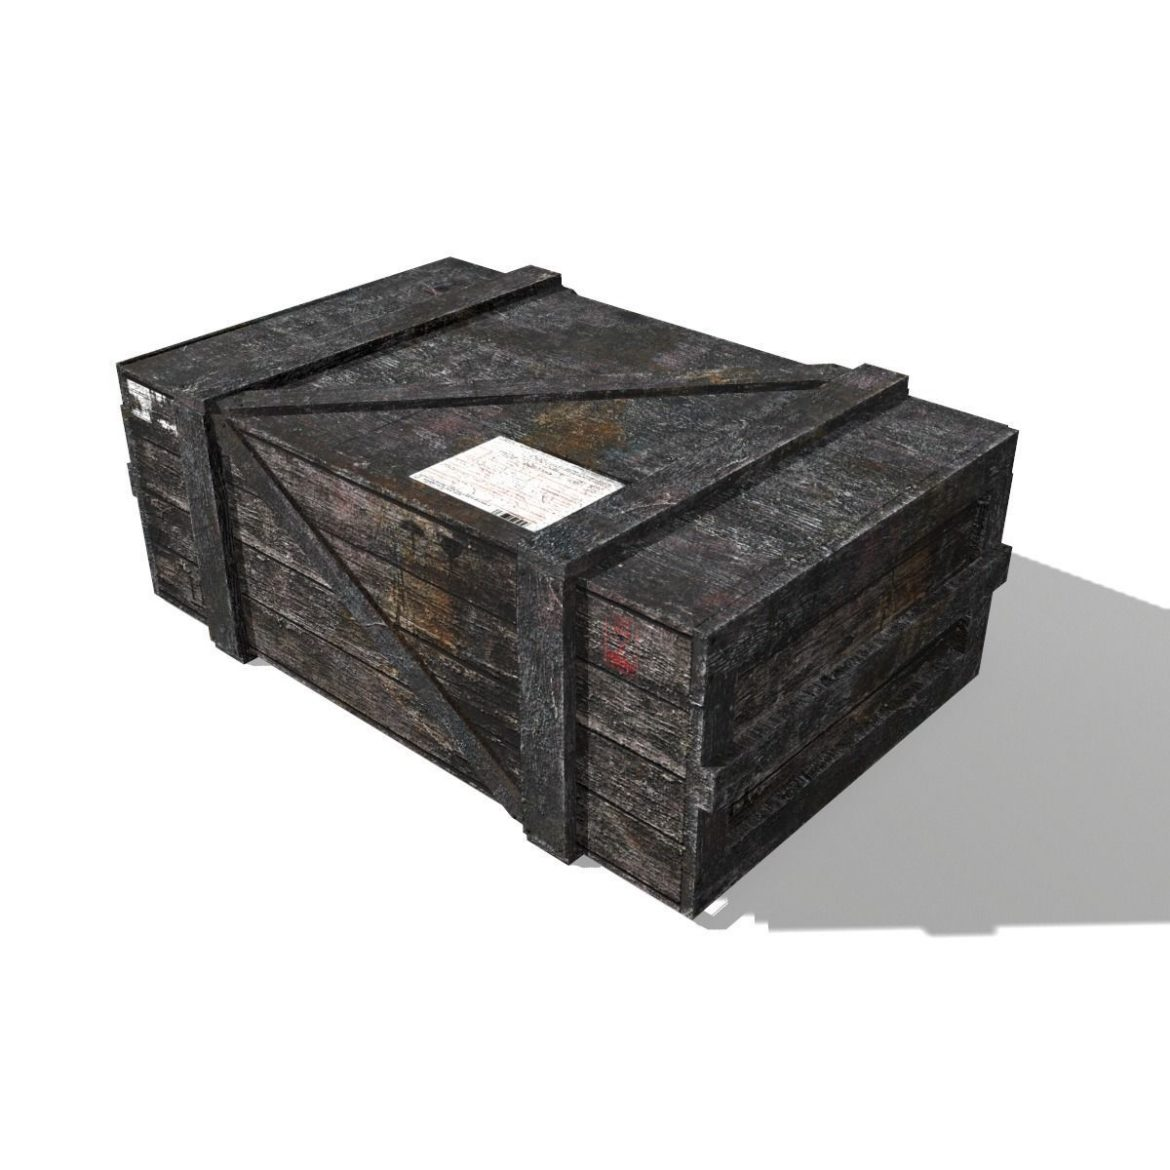 transport crates pack 3 3d model fbx obj 319441